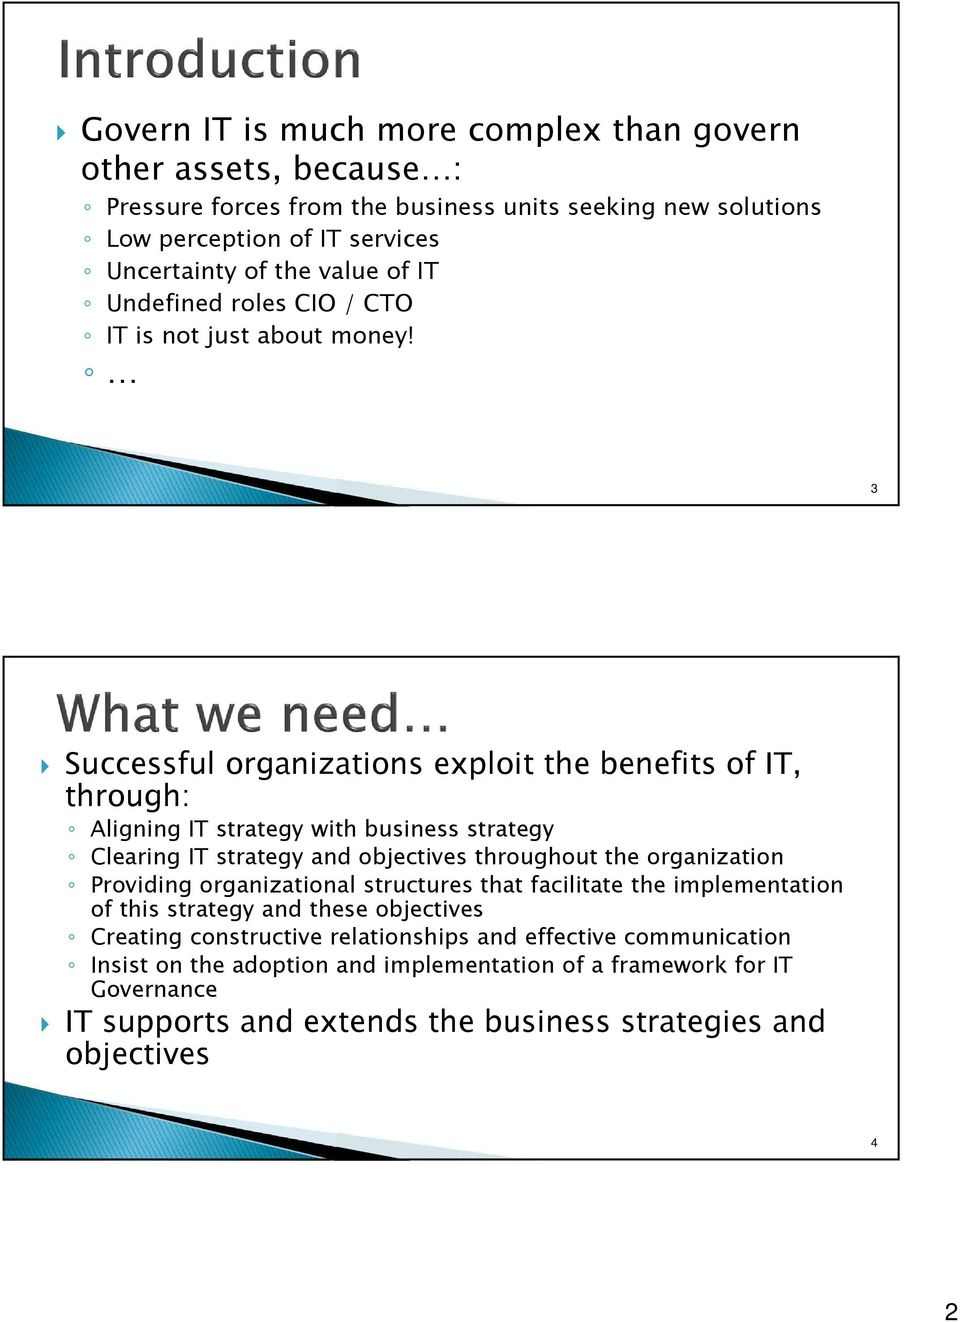 3 Successful organizations exploit the benefits of IT, through: Aligning IT strategy with business strategy Clearing IT strategy and objectives throughout the organization Providing